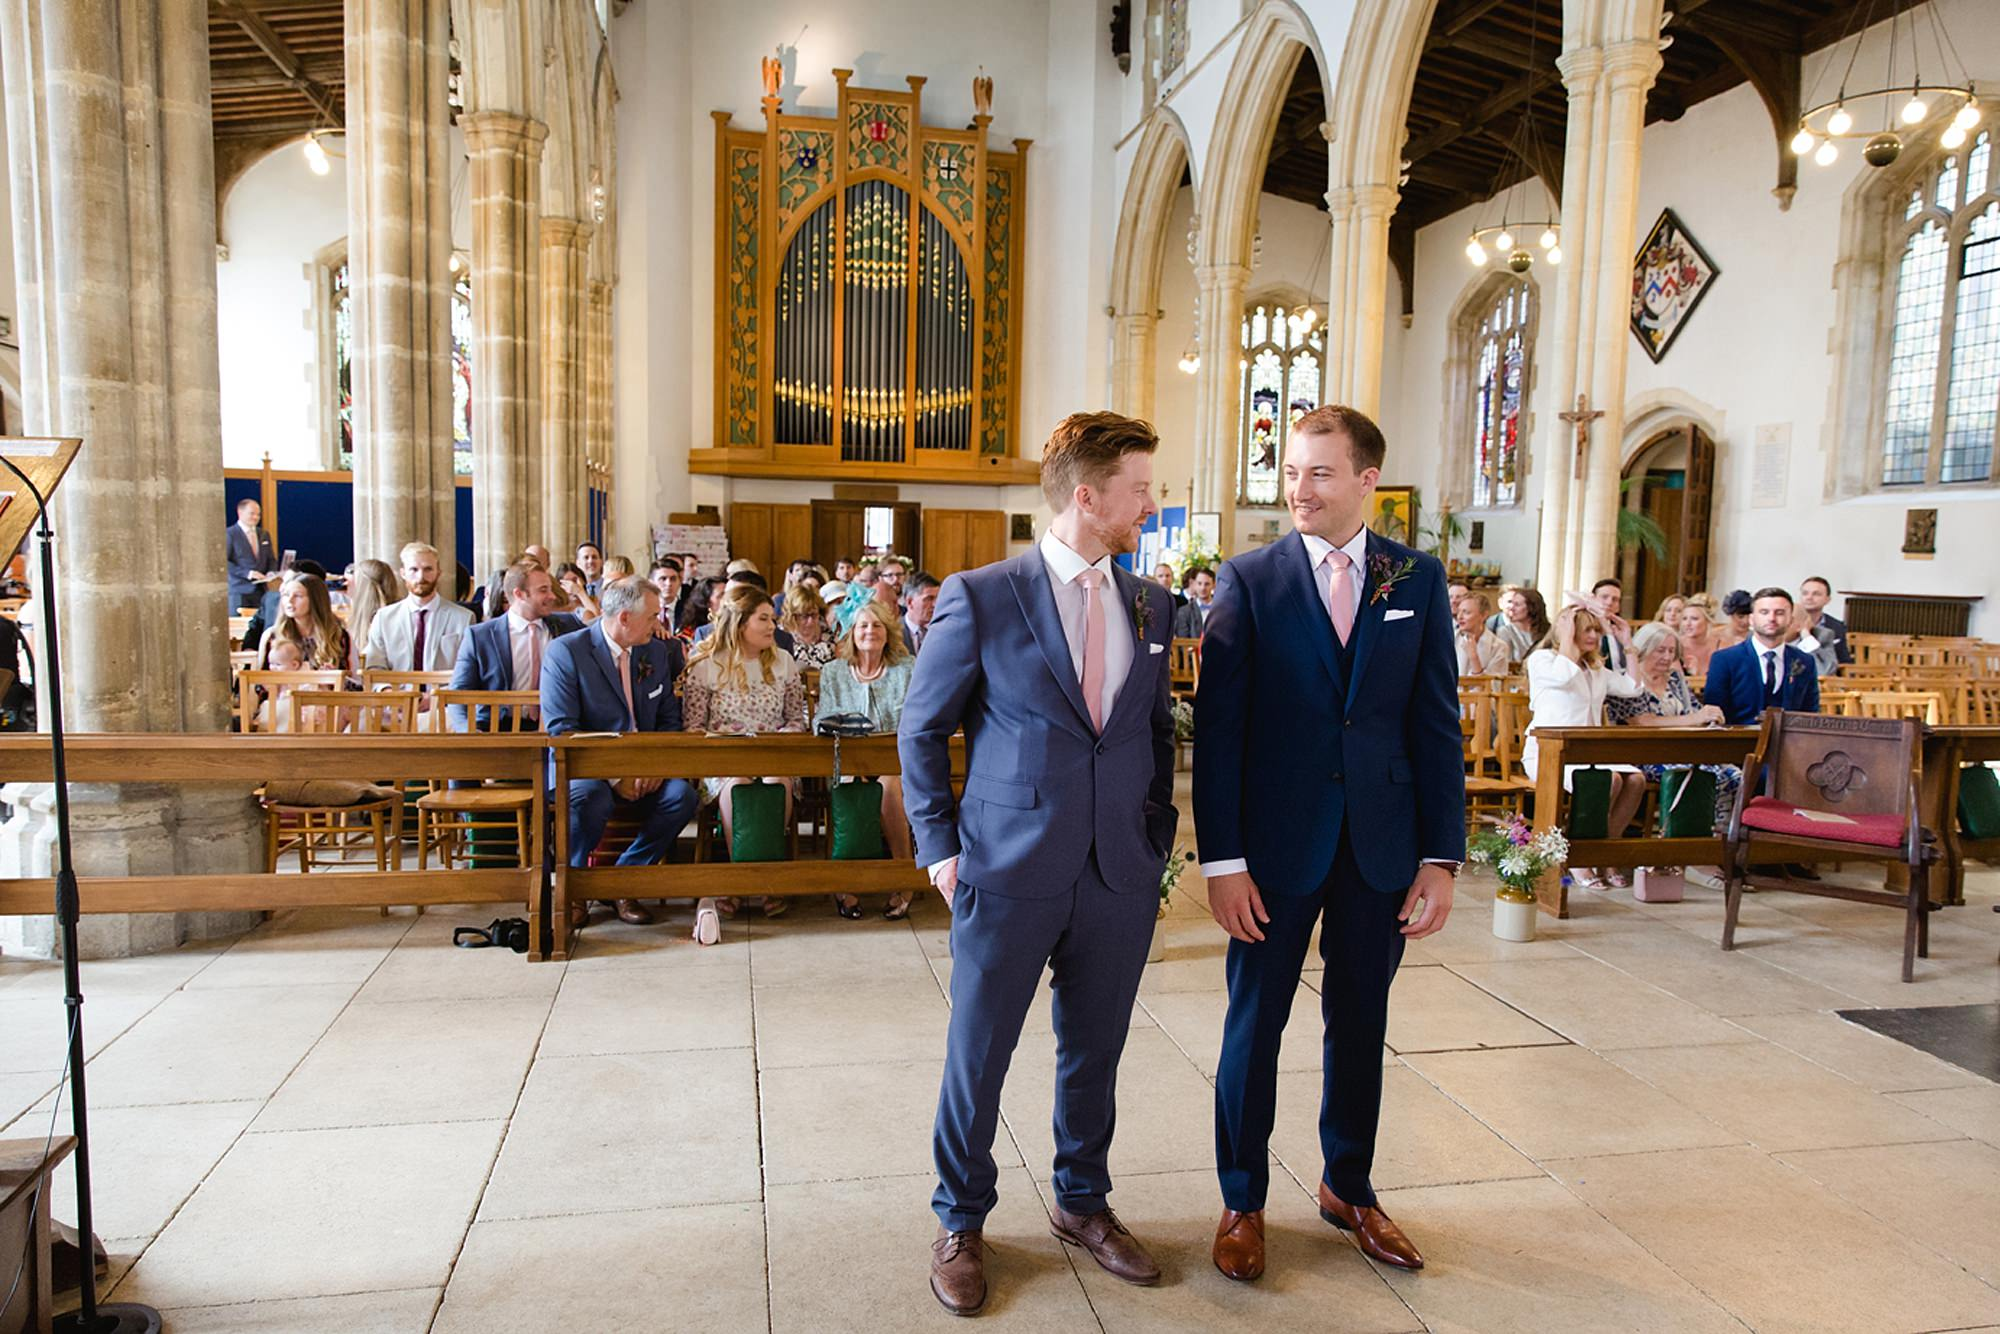 Marks Hall Estate wedding photography groom waiting for bride at church